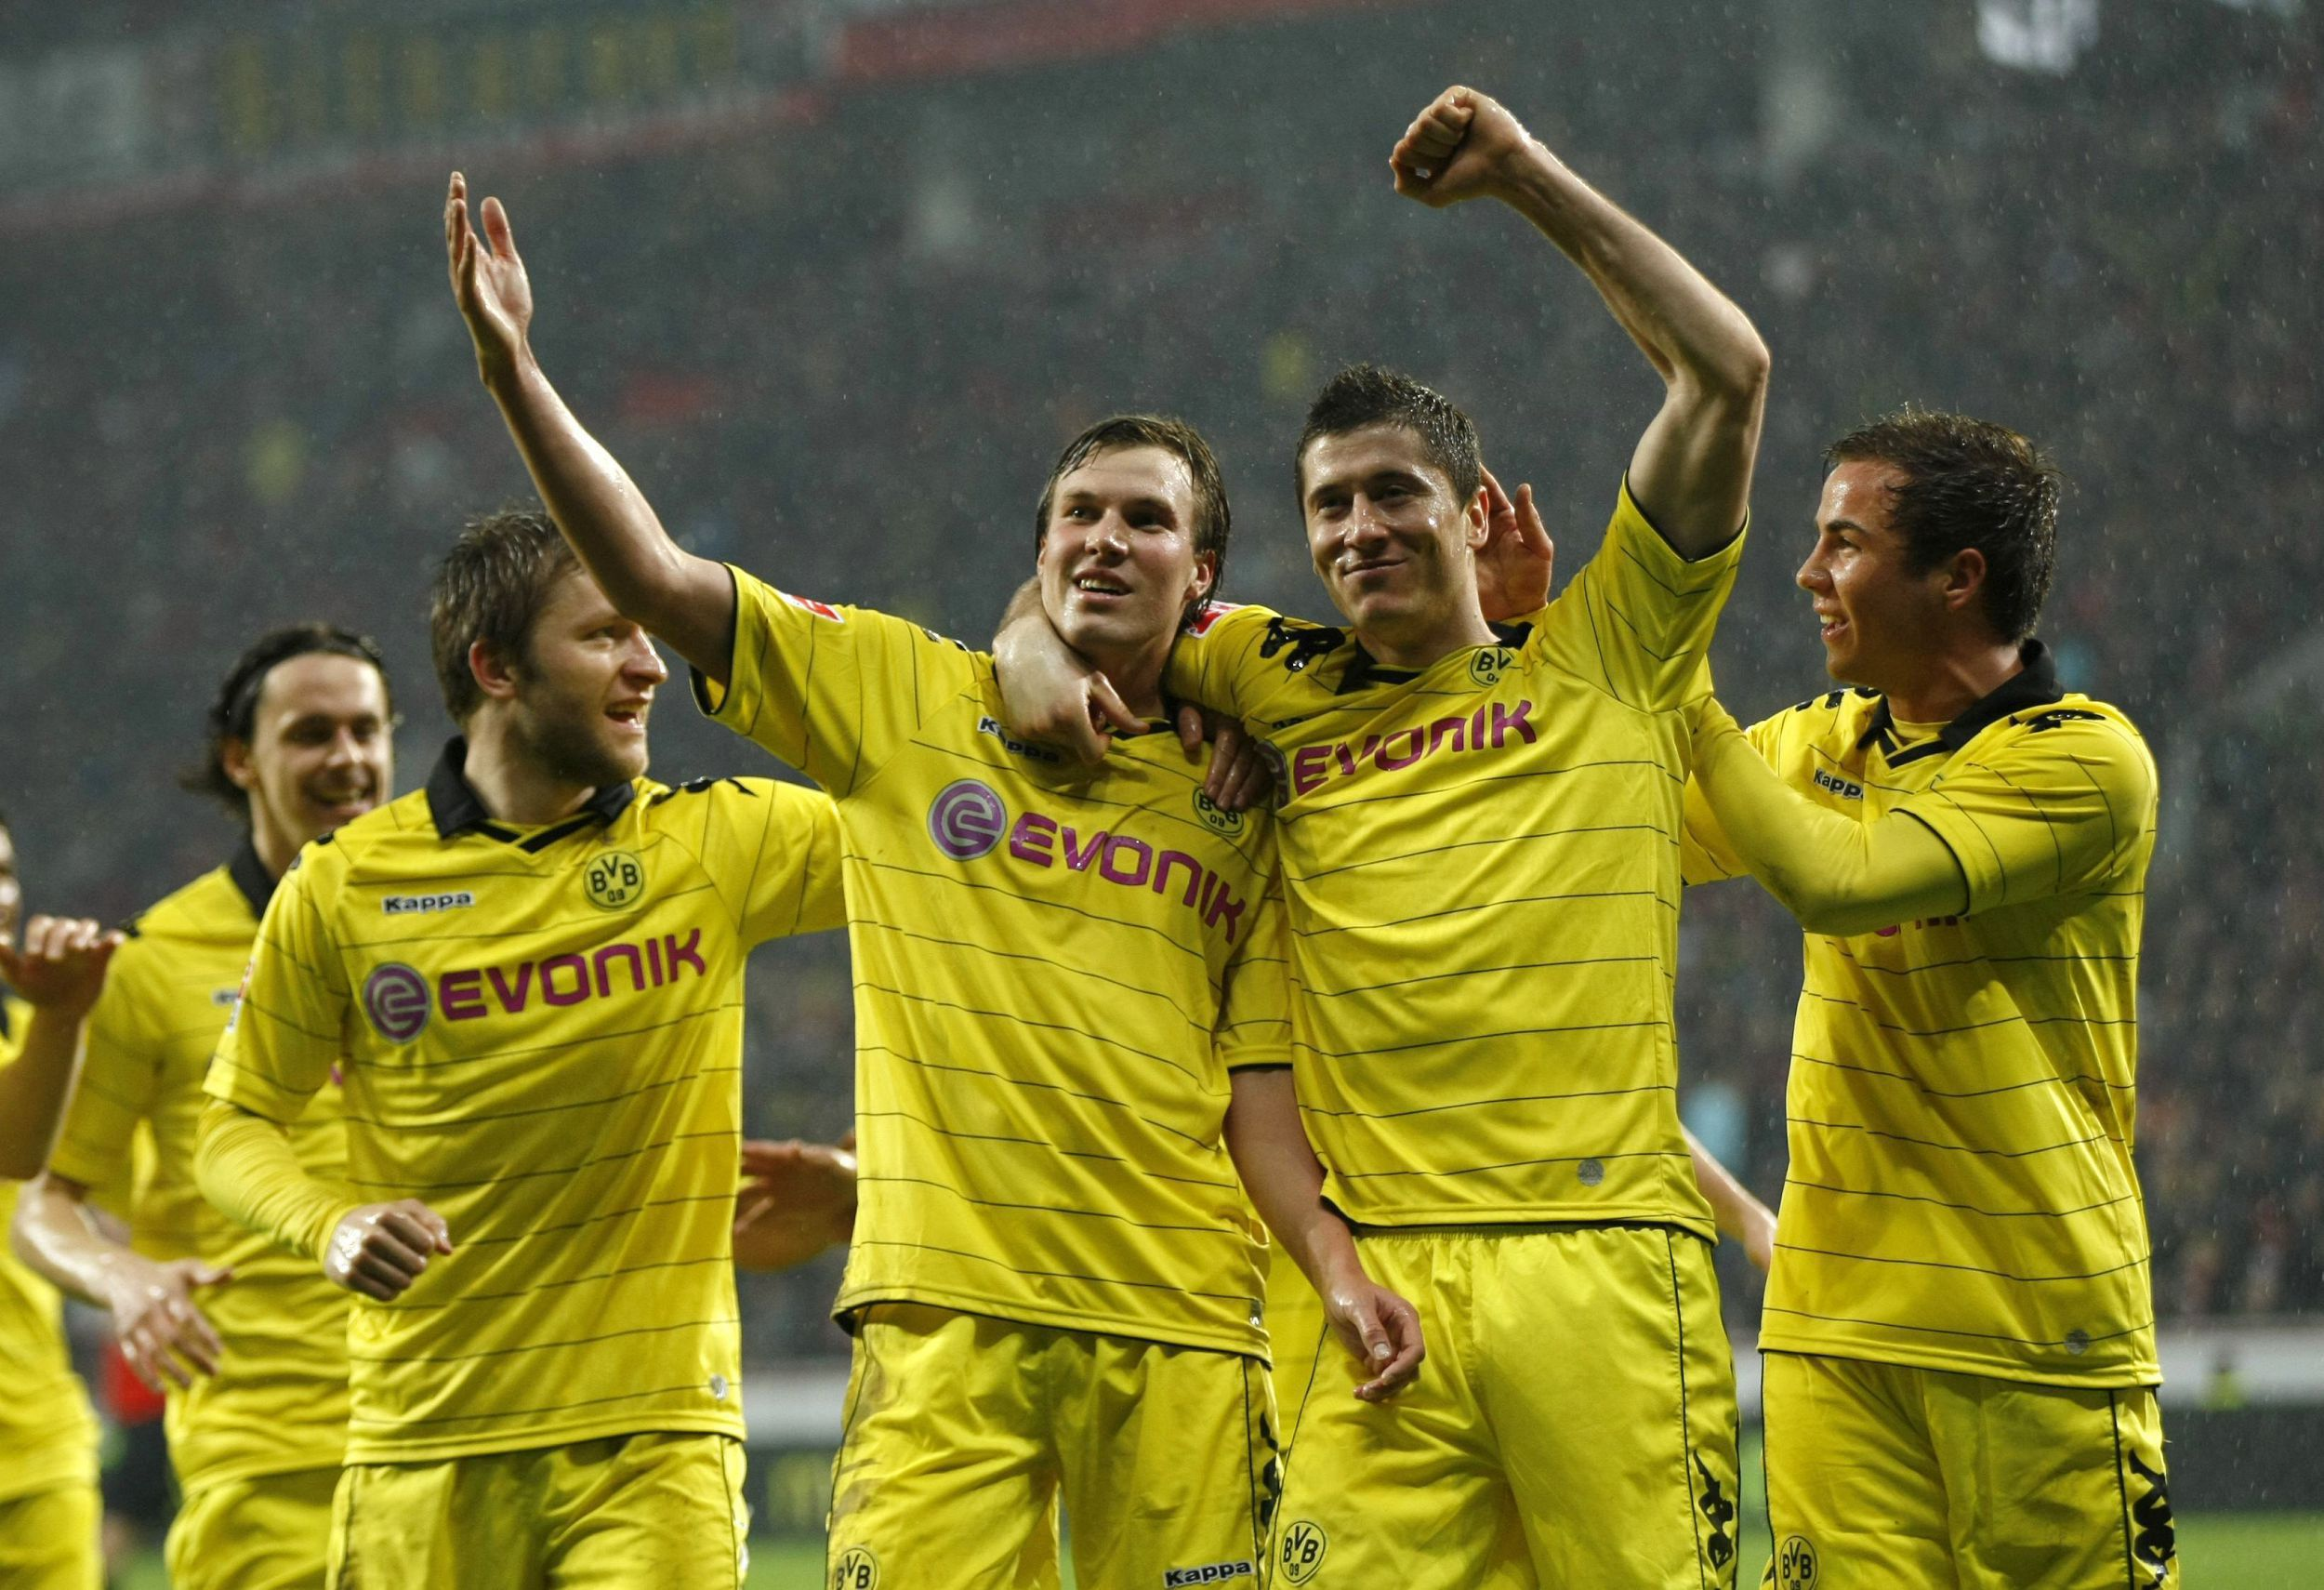 Borussia Dortmund's Grosskreutz, Lewandowski And Teammates Celebrate A Goal Against Bayer Leverkusen In Leverkusen